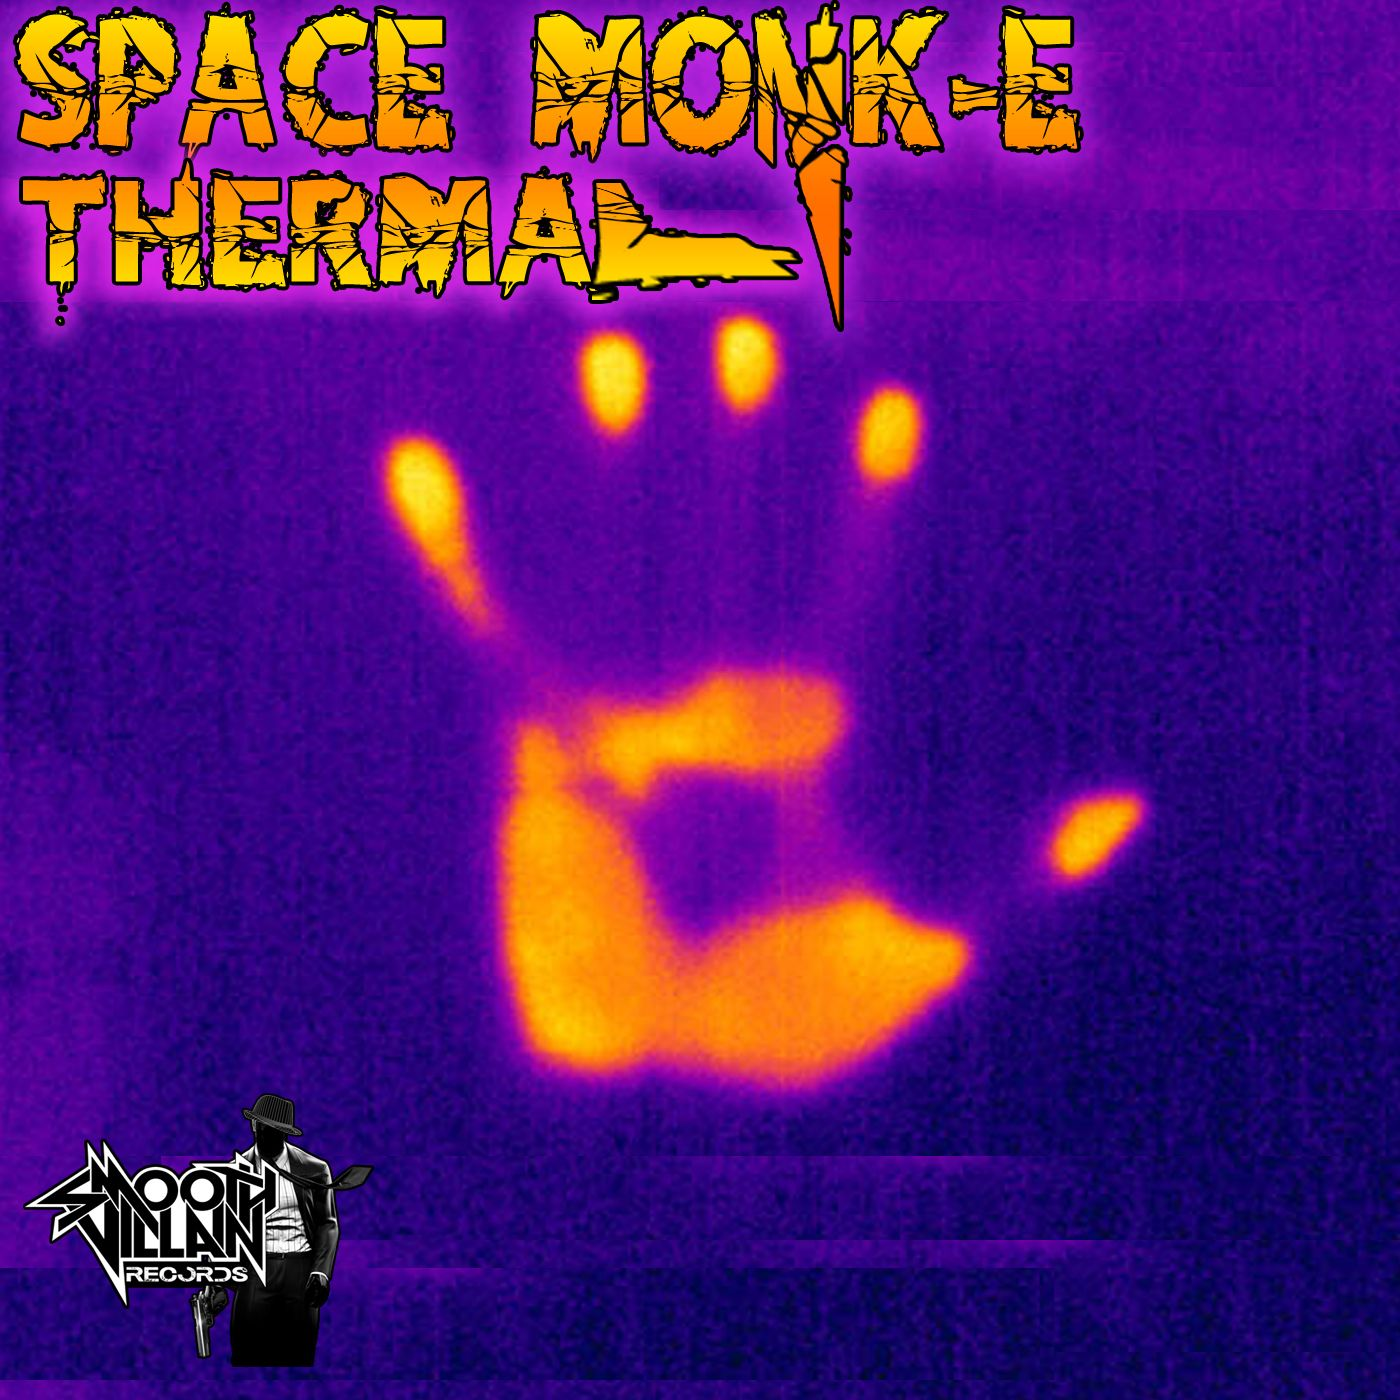 space_monk-e_-_thermal.jpg